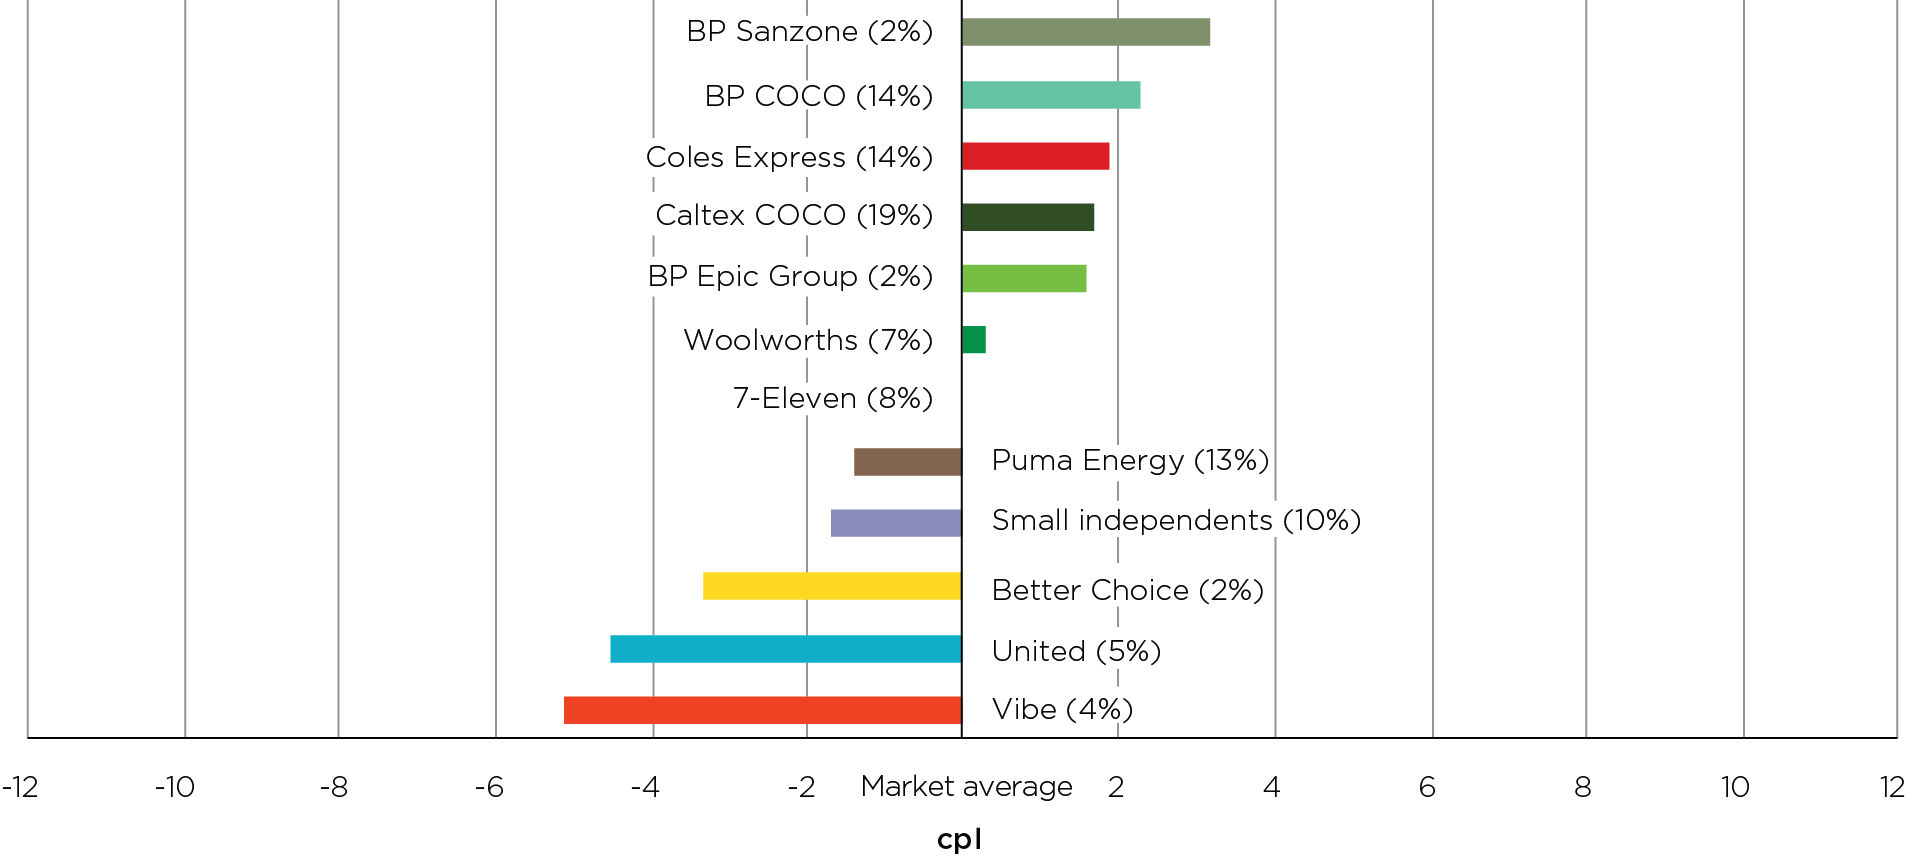 In 2020, Perth motorists could have saved 8.3 cents per litre by buying petrol at the lowest-priced retailer, which was Vibe, rather than the highest-priced retailer, which was BP Sanzone.